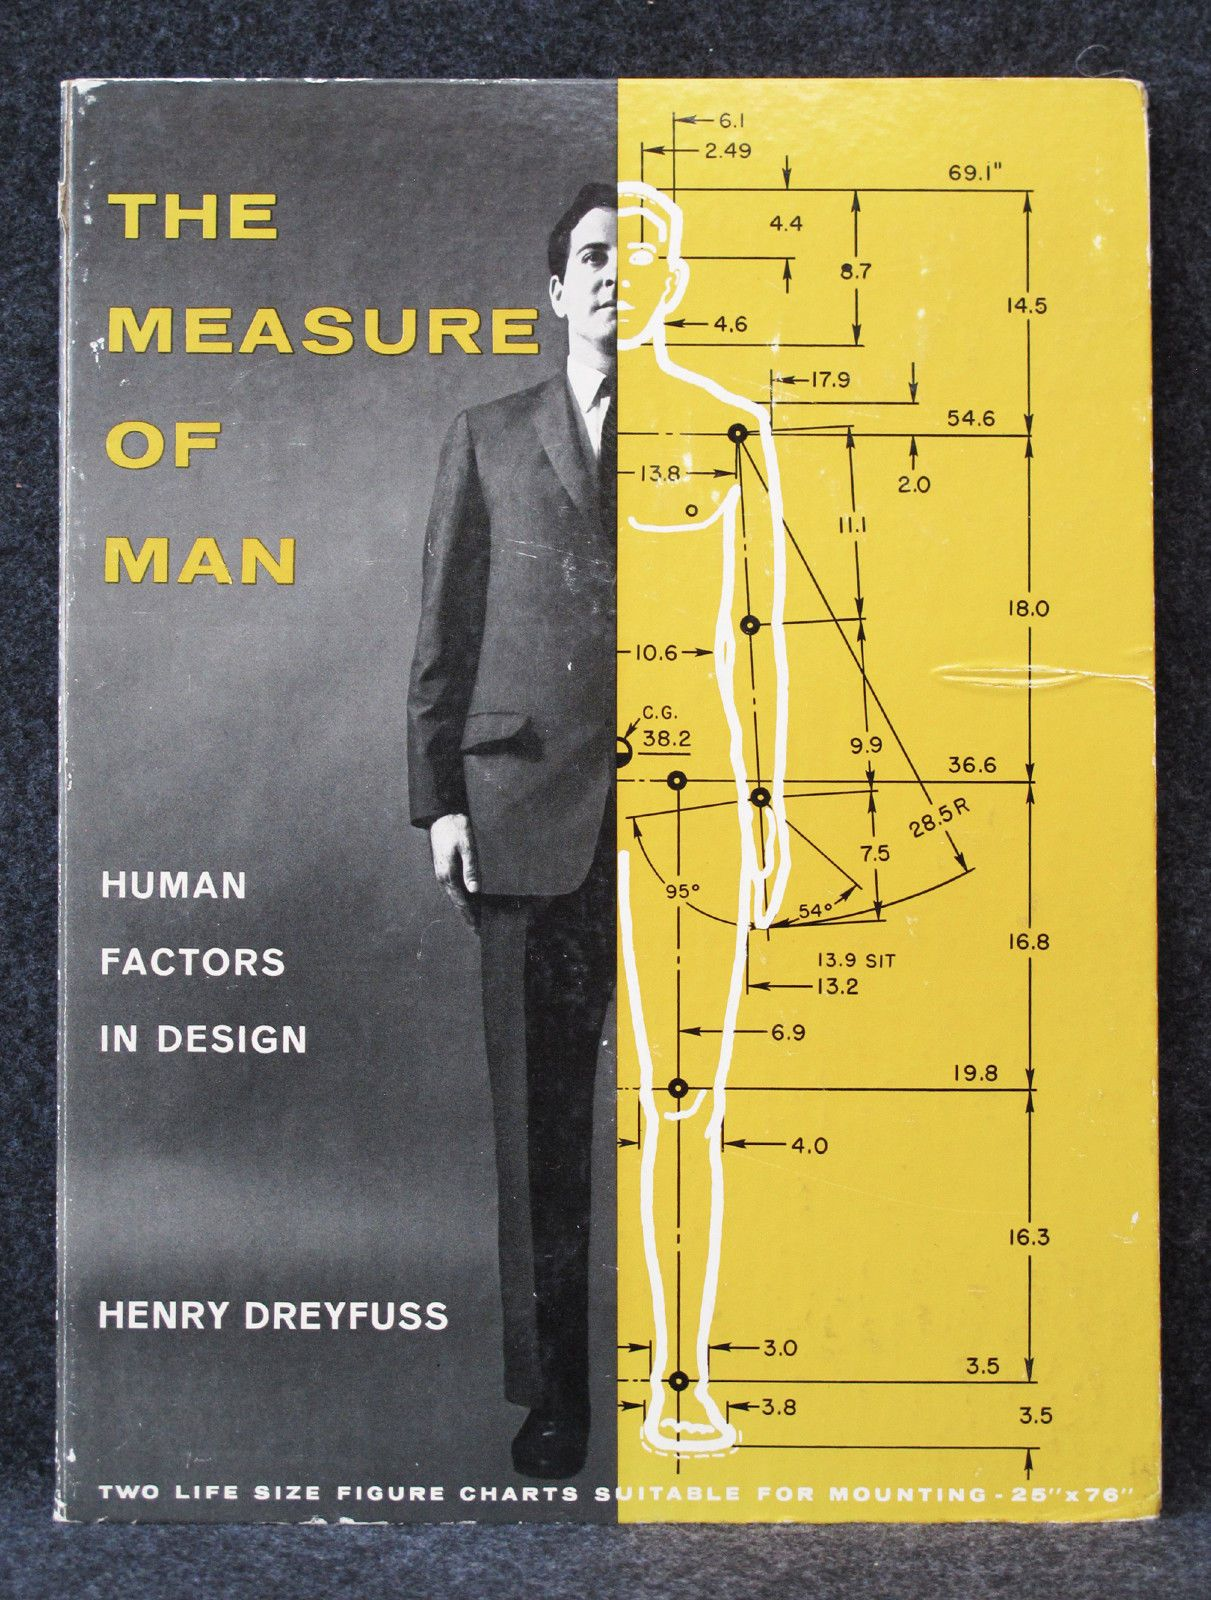 The Measure of Man:  Human Factors in Design by Henry Dreyfuss